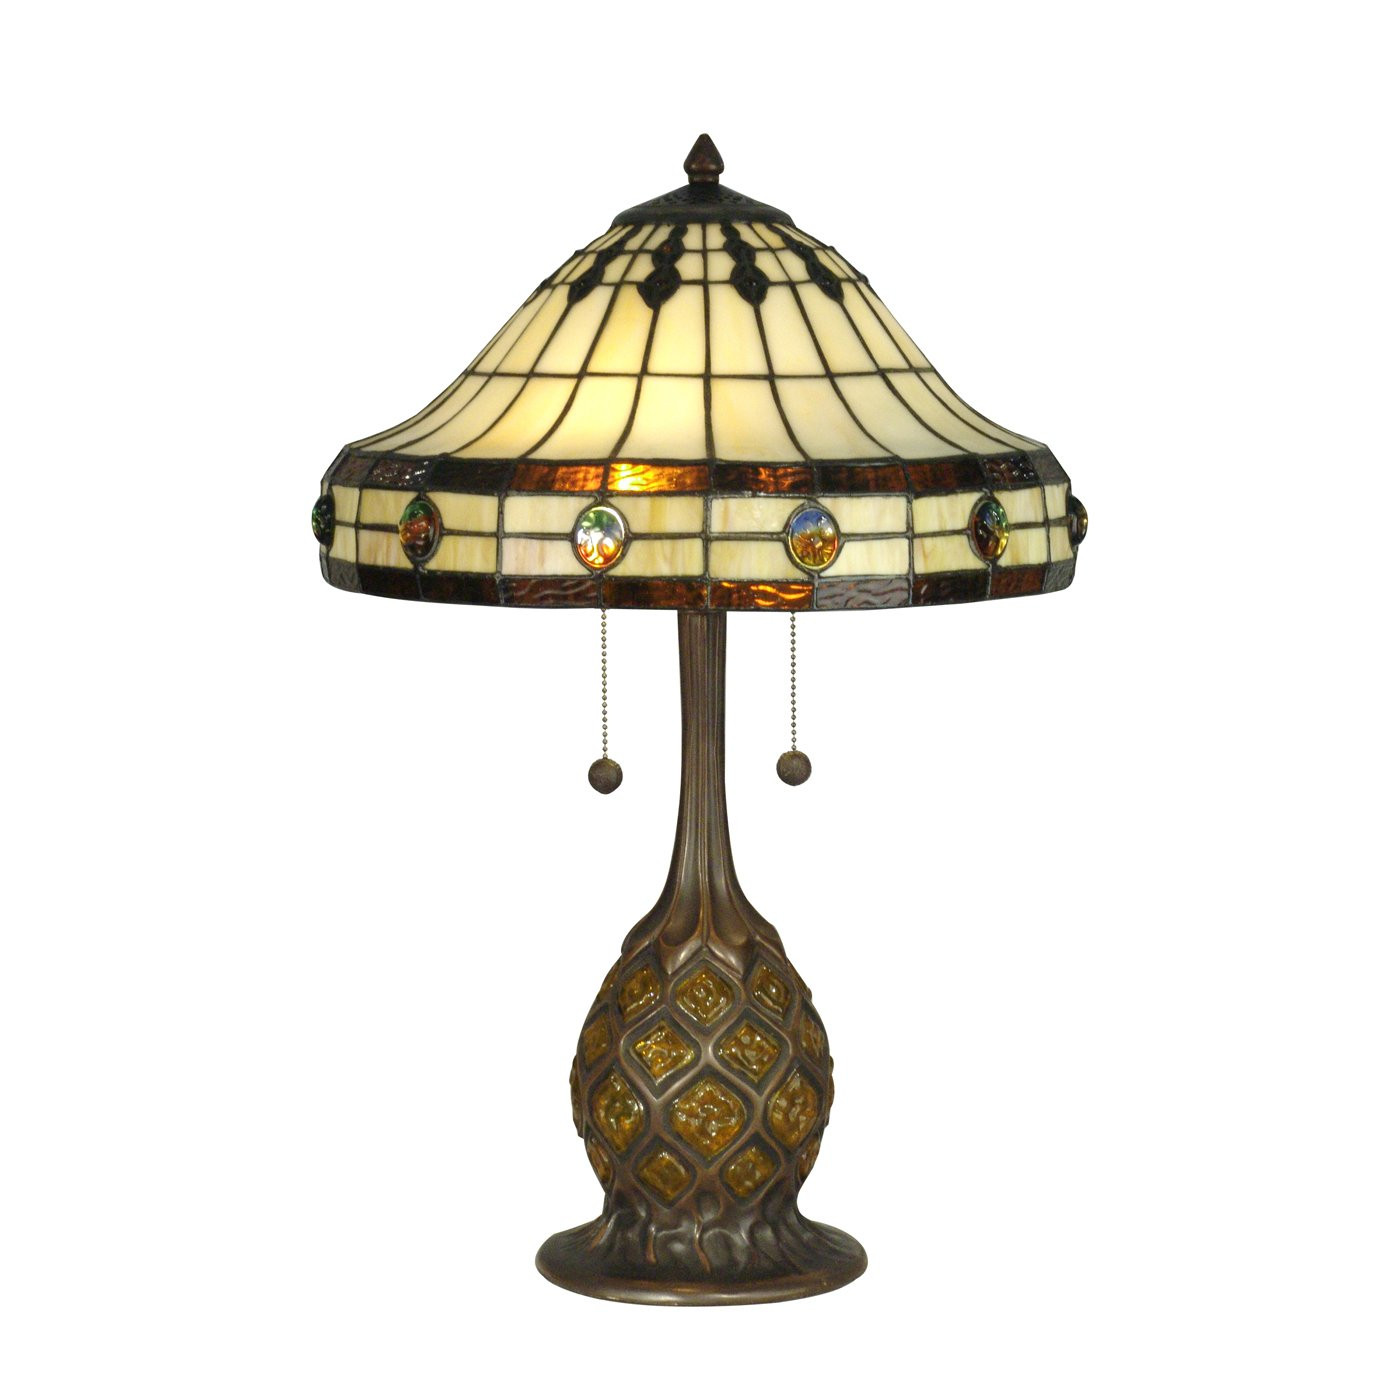 Antique Tiffany Lamps New Dale Tiffany Tt 2 Light Table Lamp Antique Bronze Of Amazing 47 Photos Antique Tiffany Lamps